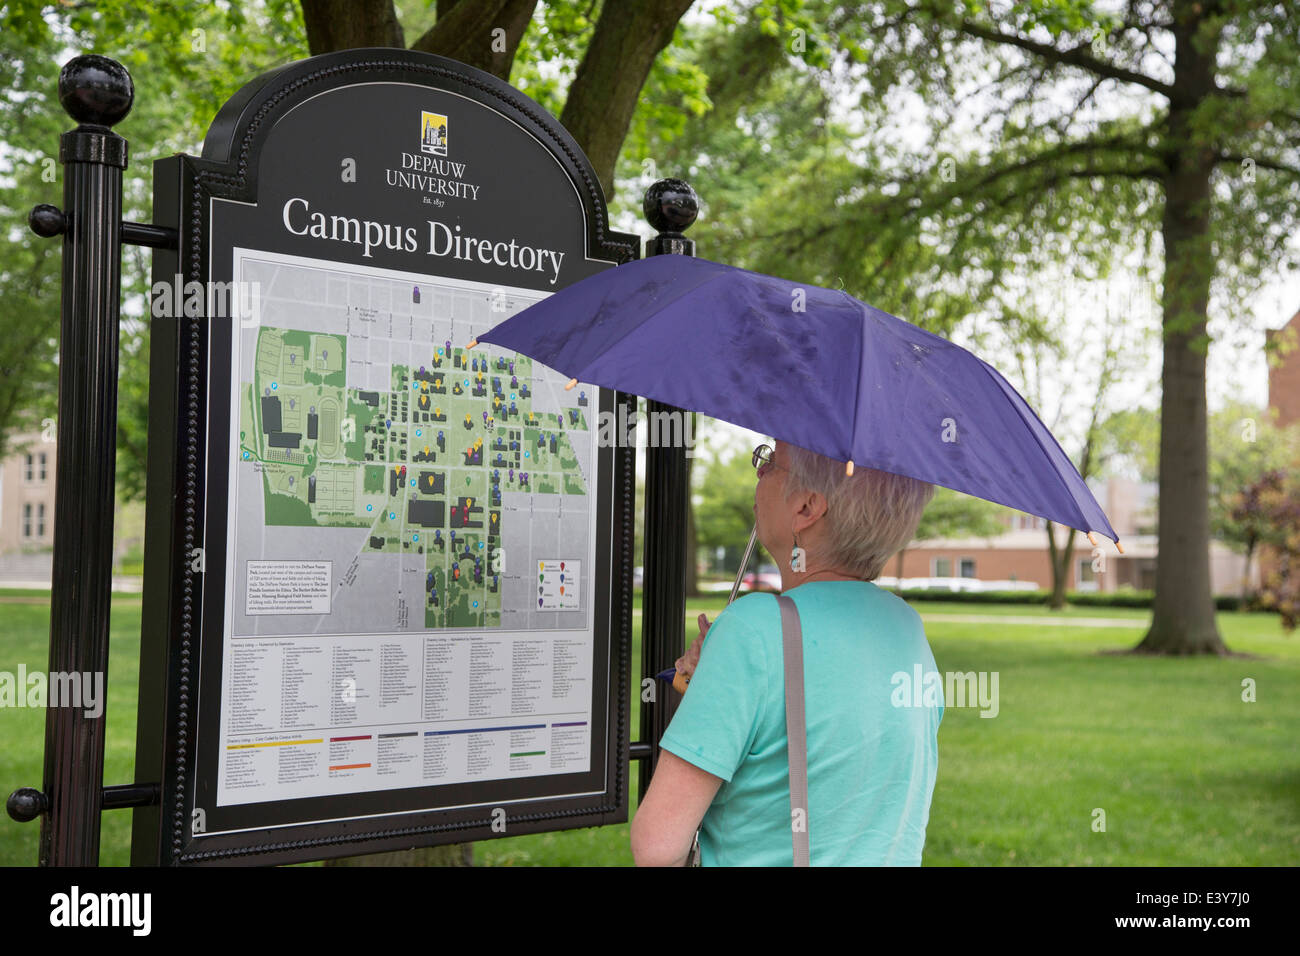 Greencastle, Indiana - A woman studies the campus directory at Depauw University. - Stock Image